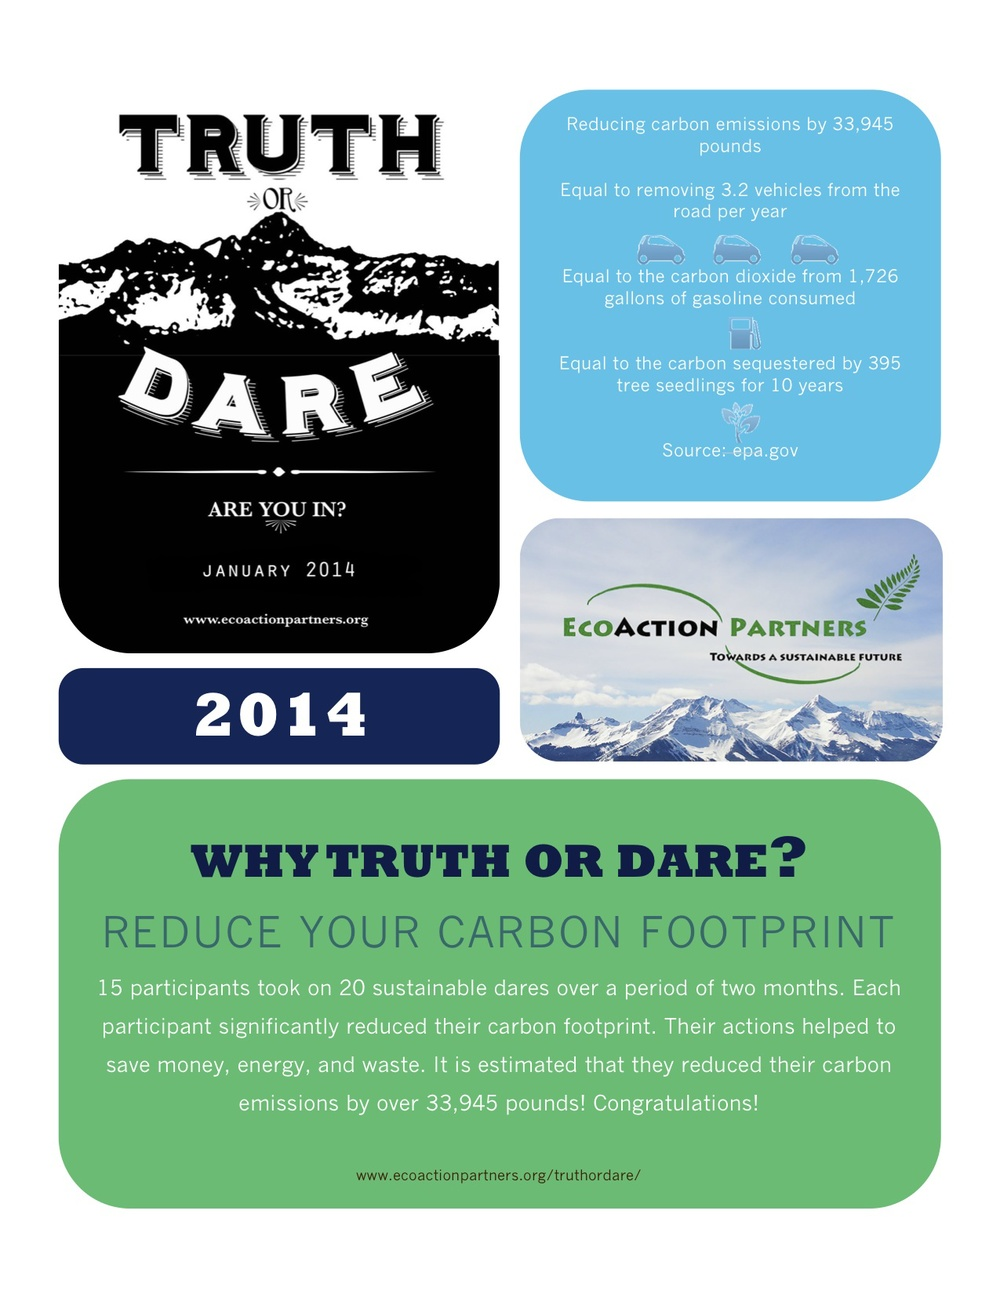 truth or dares page.jpg